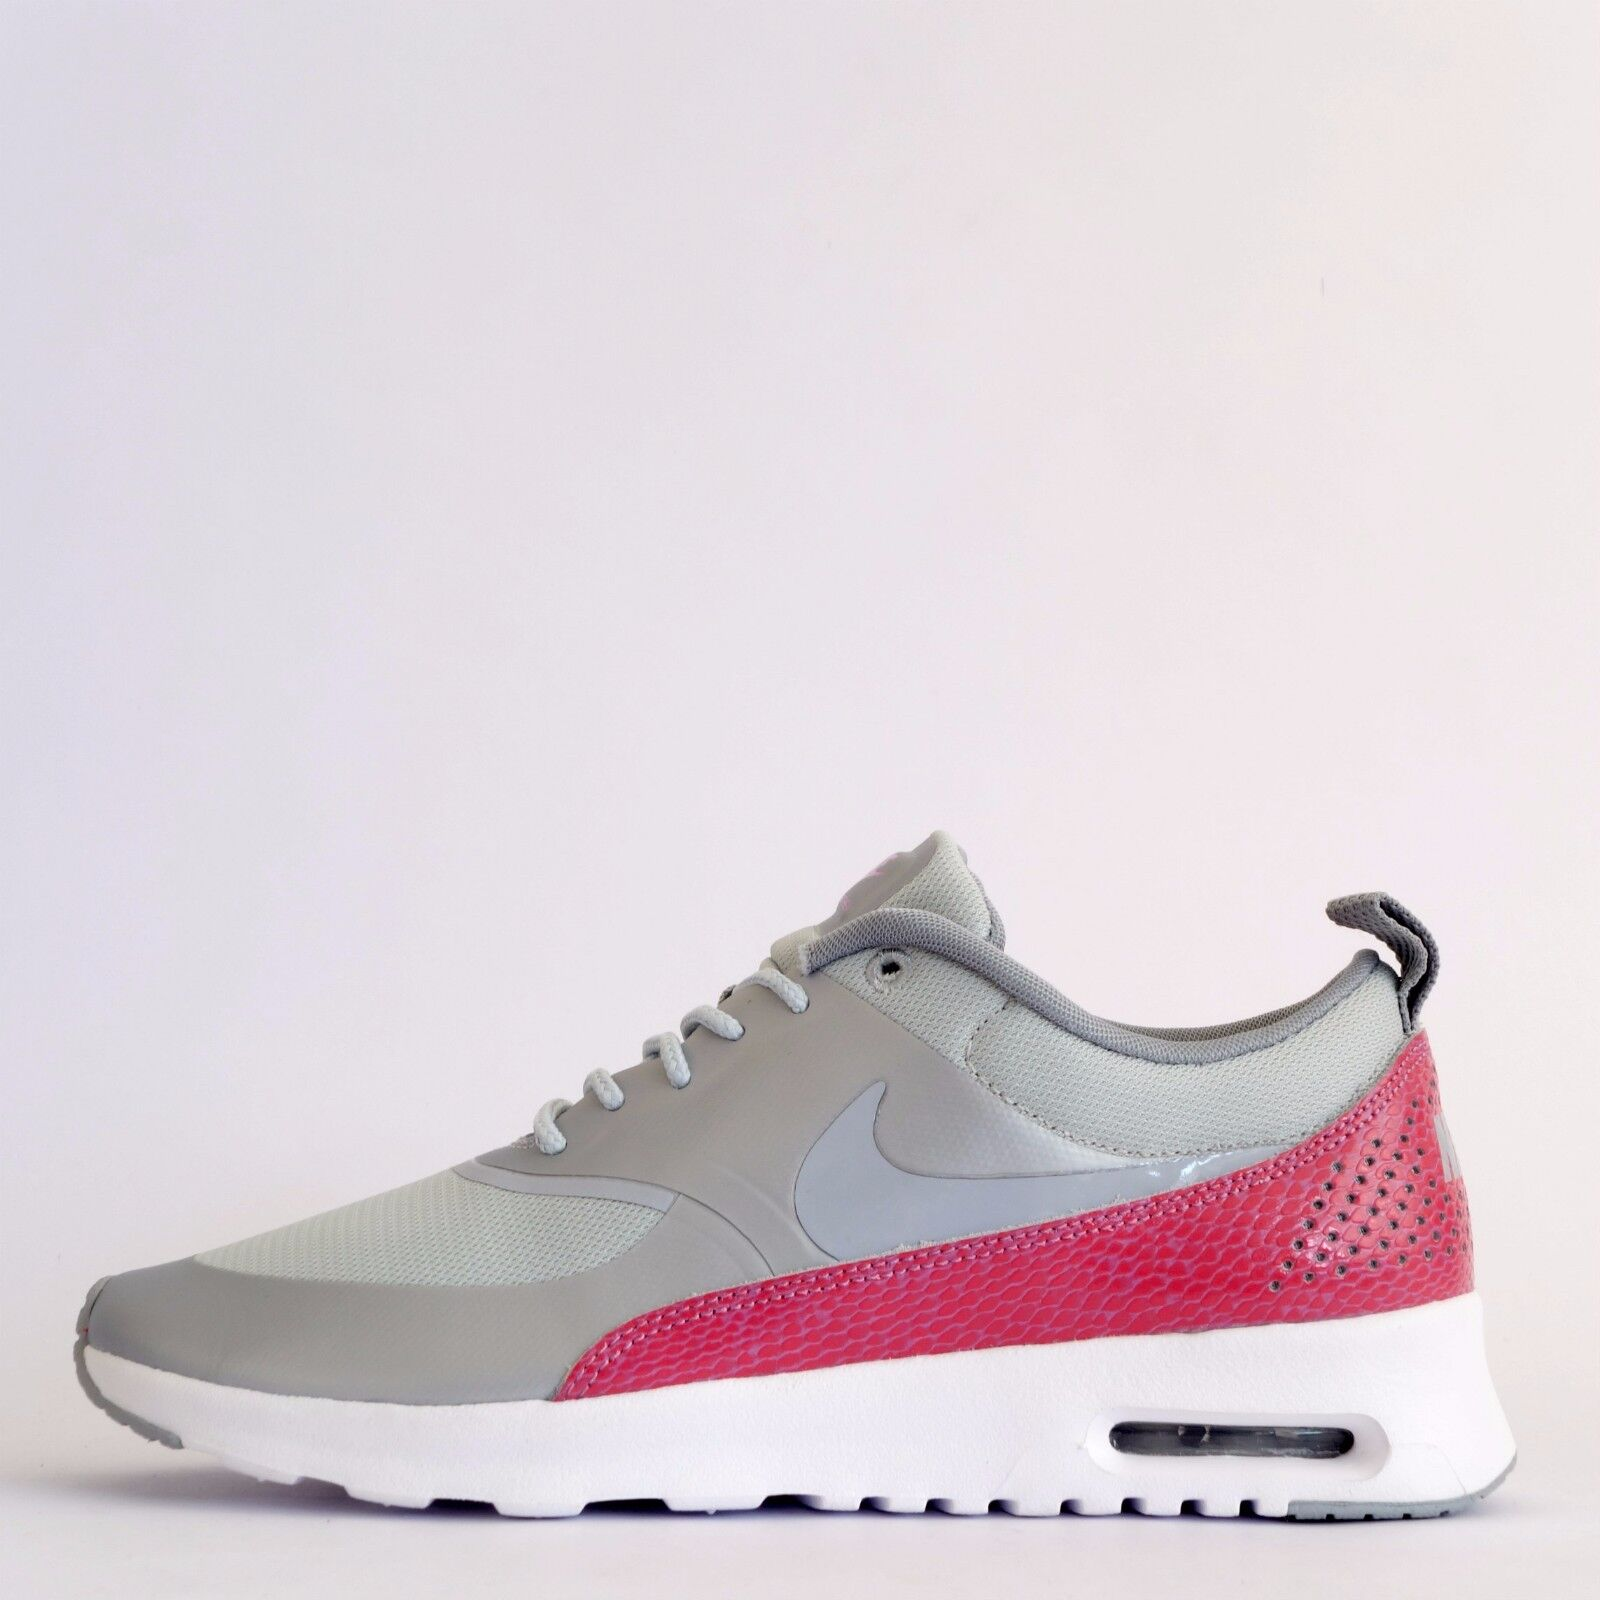 Nike Air Max Thea Premium Snake Wo Baskets Hommes Casual Trainers Chaussures Baskets Wo Gris ce225e